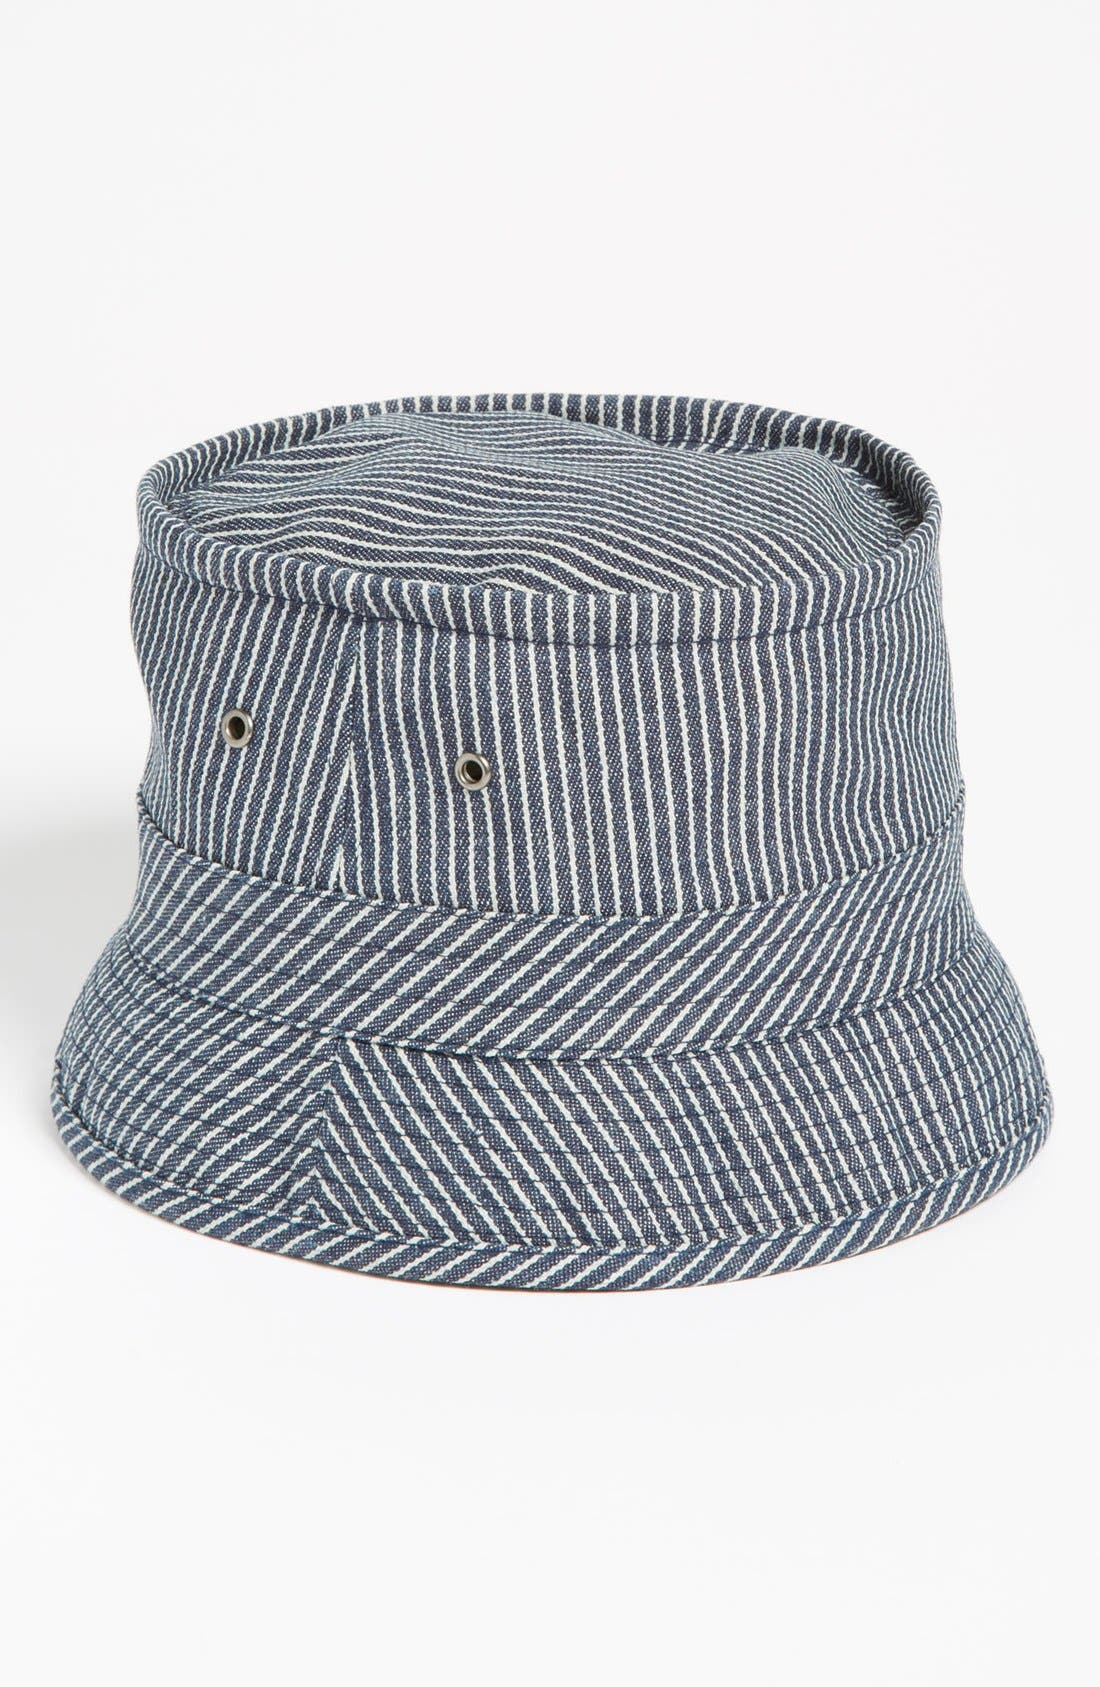 Main Image - The Accessory Collective Bucket Hat (Big Boys)